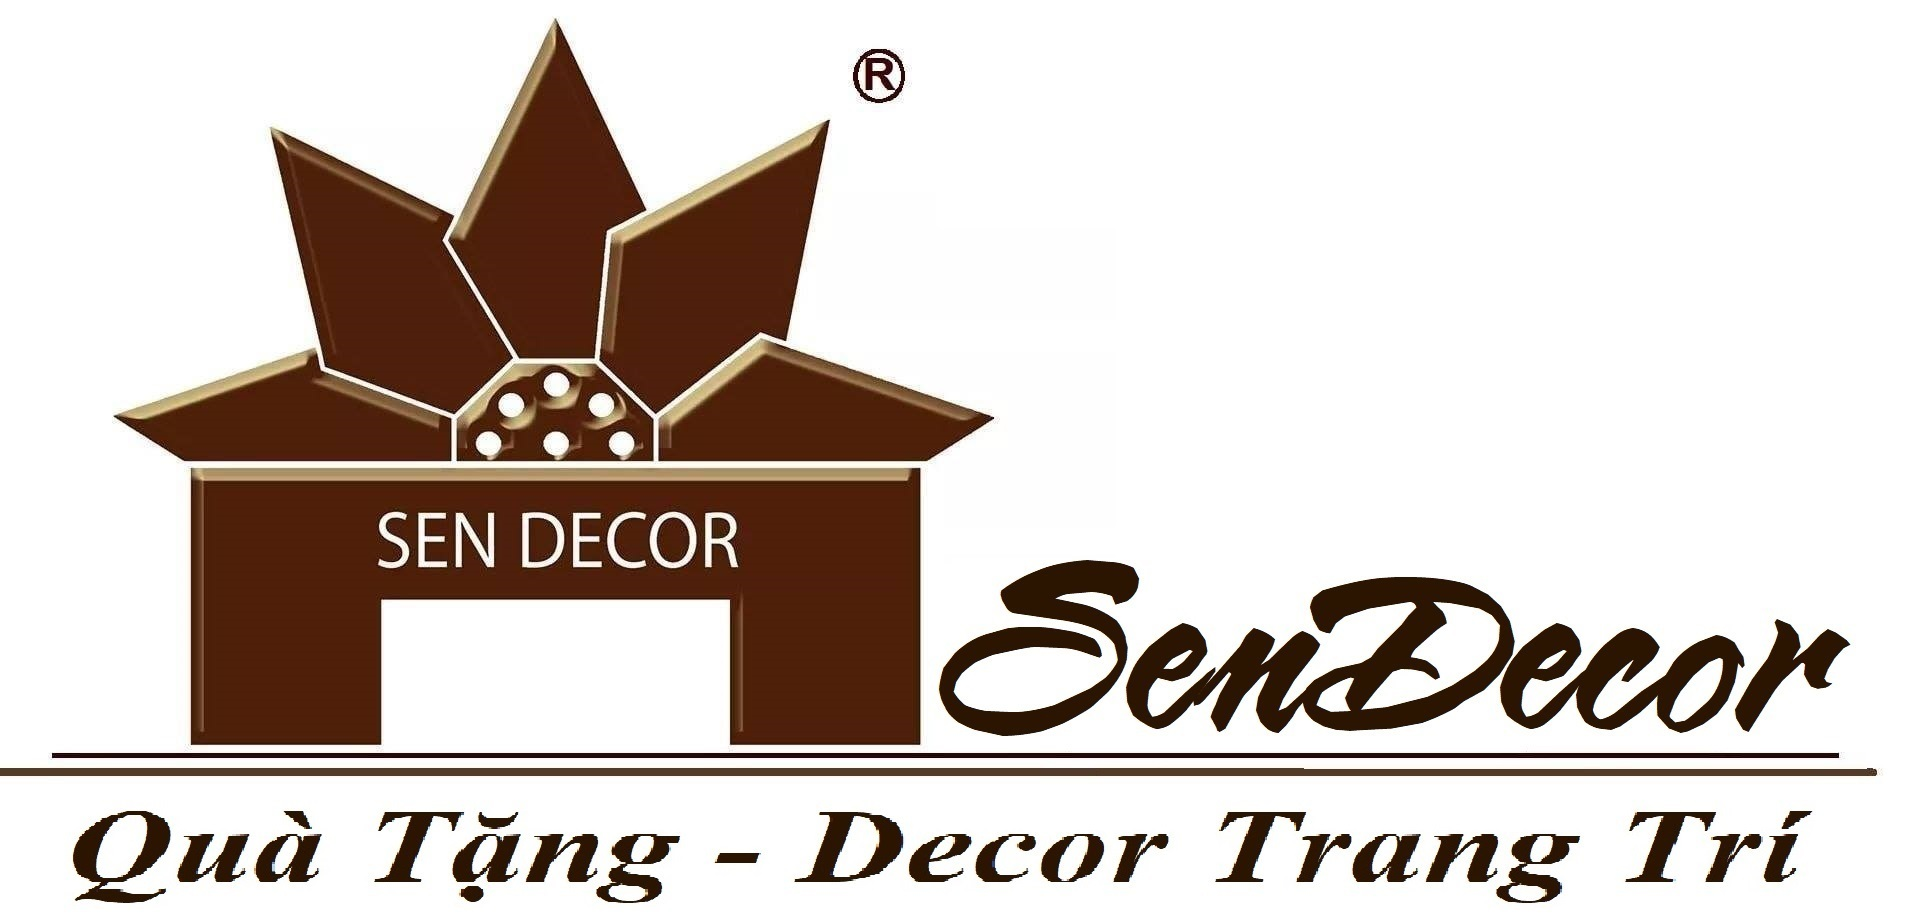 SenDecor (Facebook: SenDecor / Website: sendecor.net)